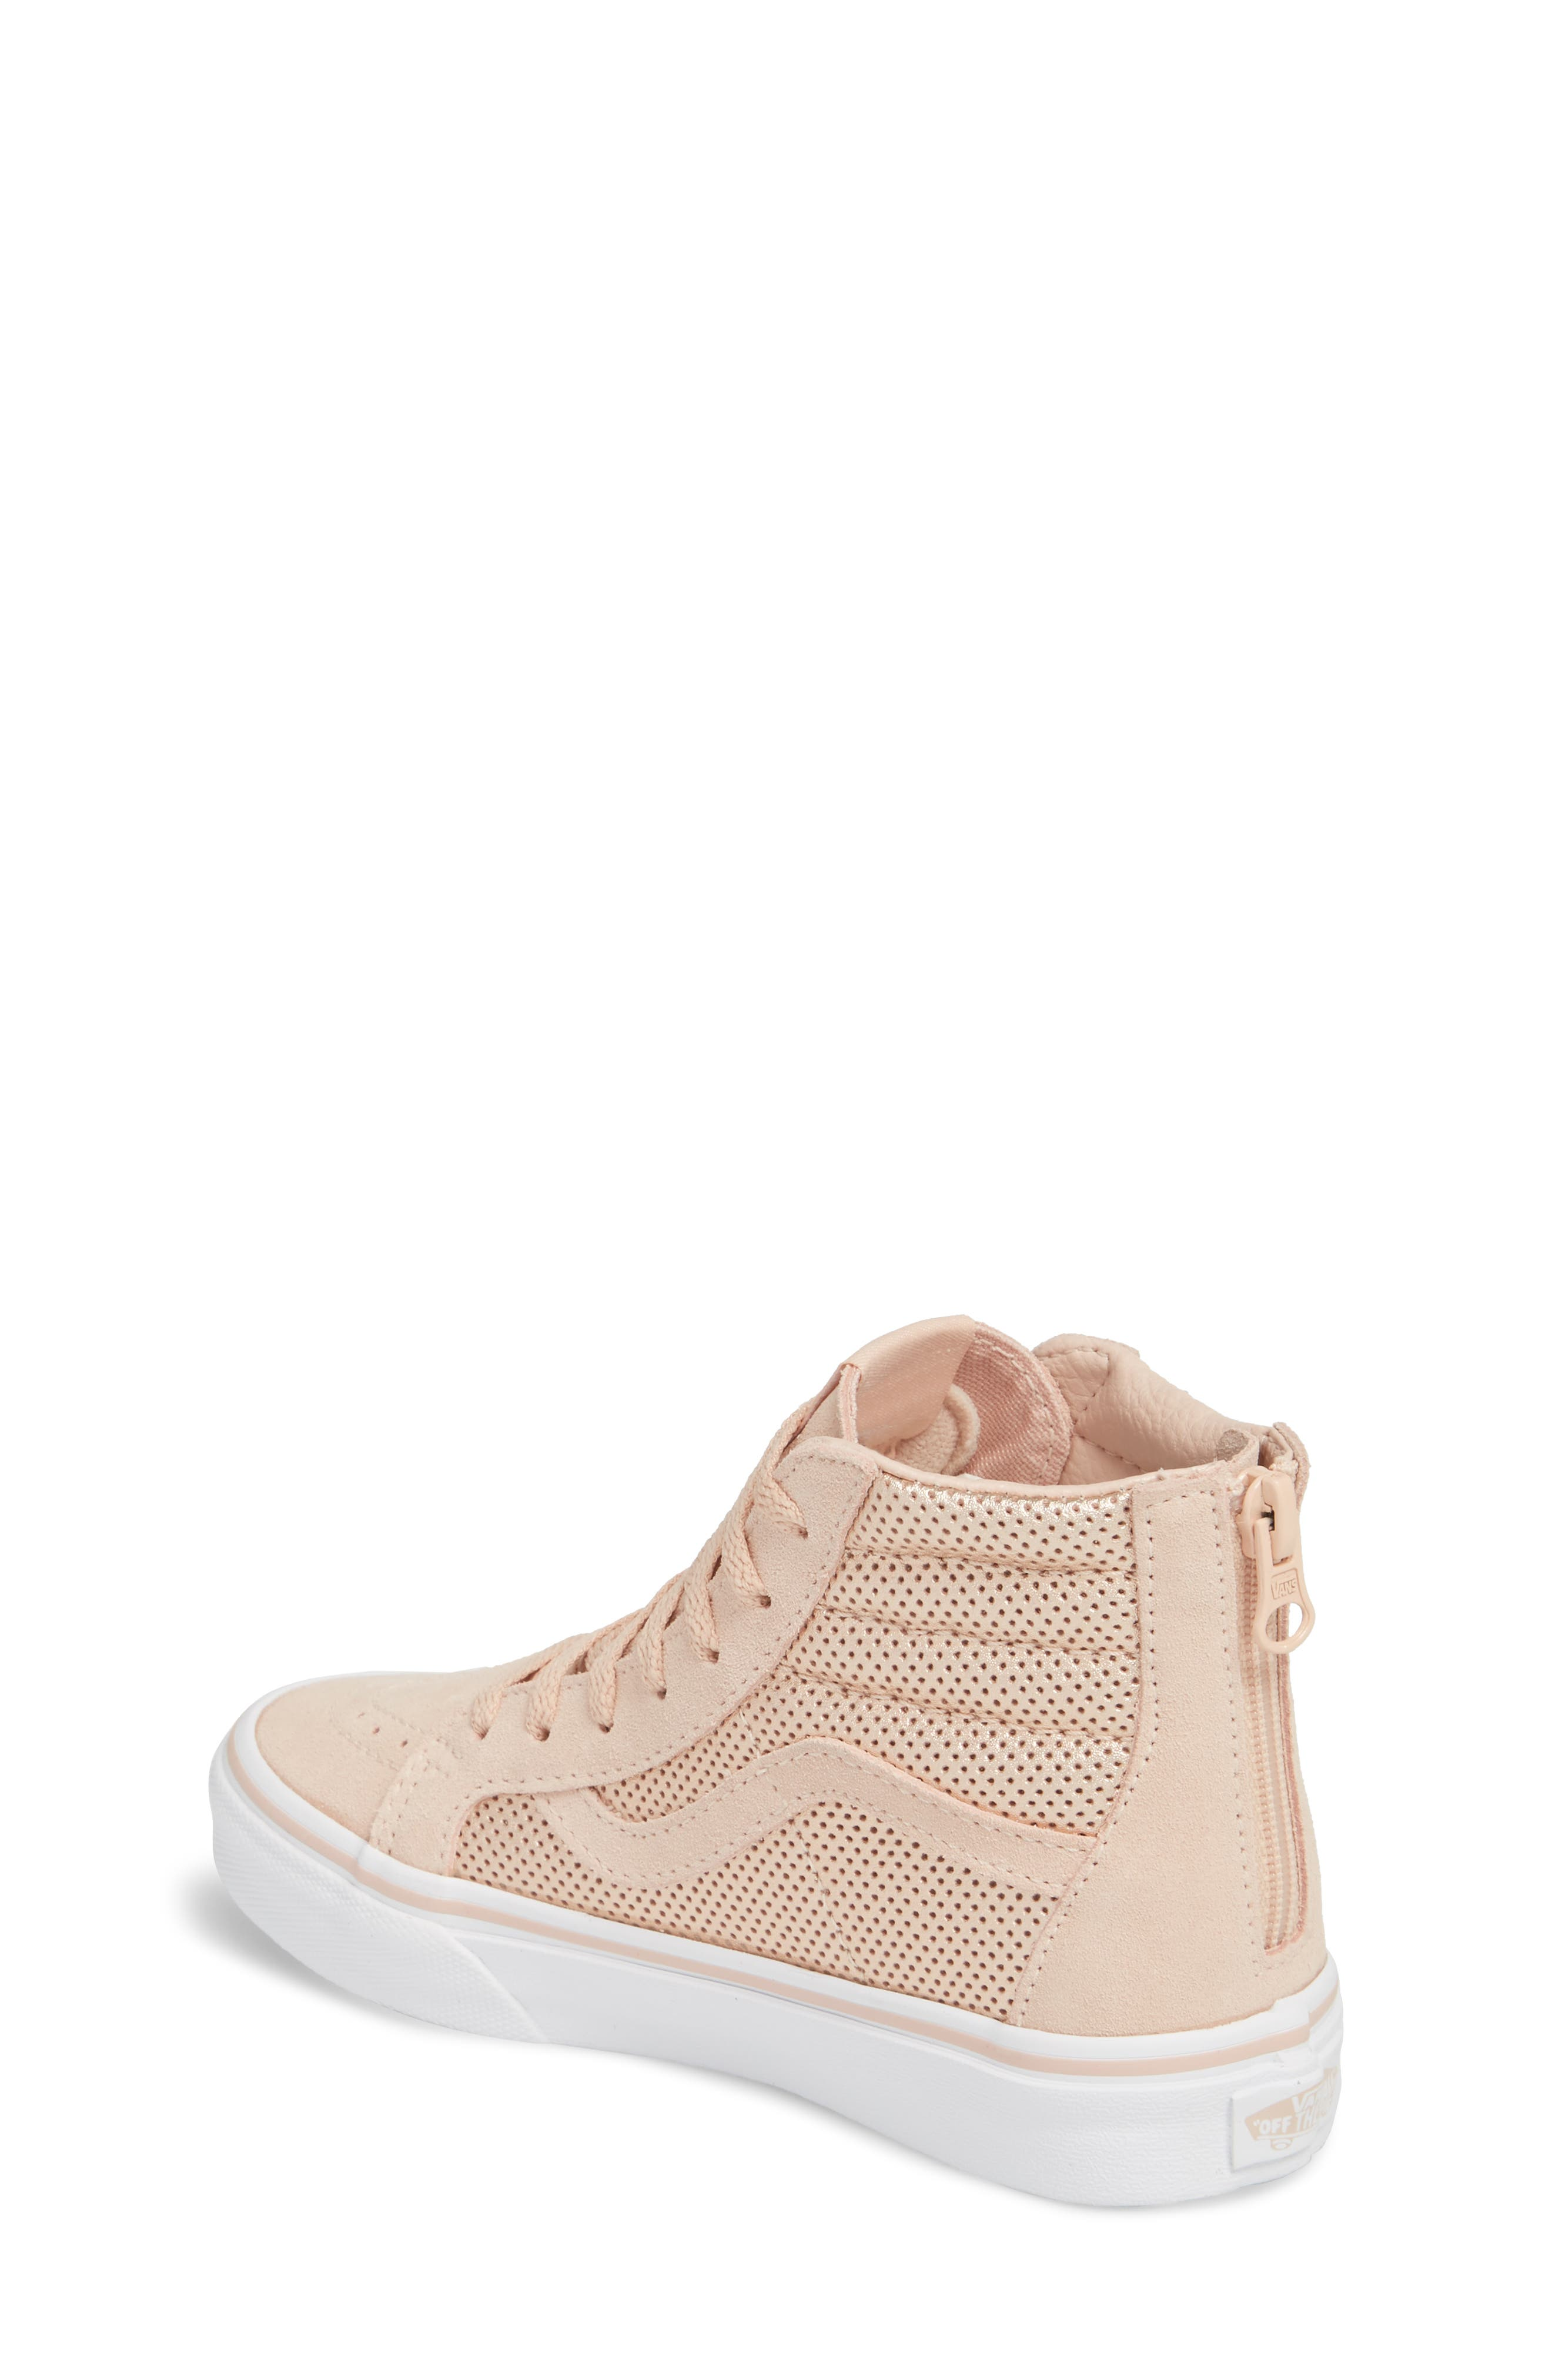 SK8-Hi Zip Sneaker,                             Alternate thumbnail 2, color,                             ROSE GOLD SUEDE LEATHER